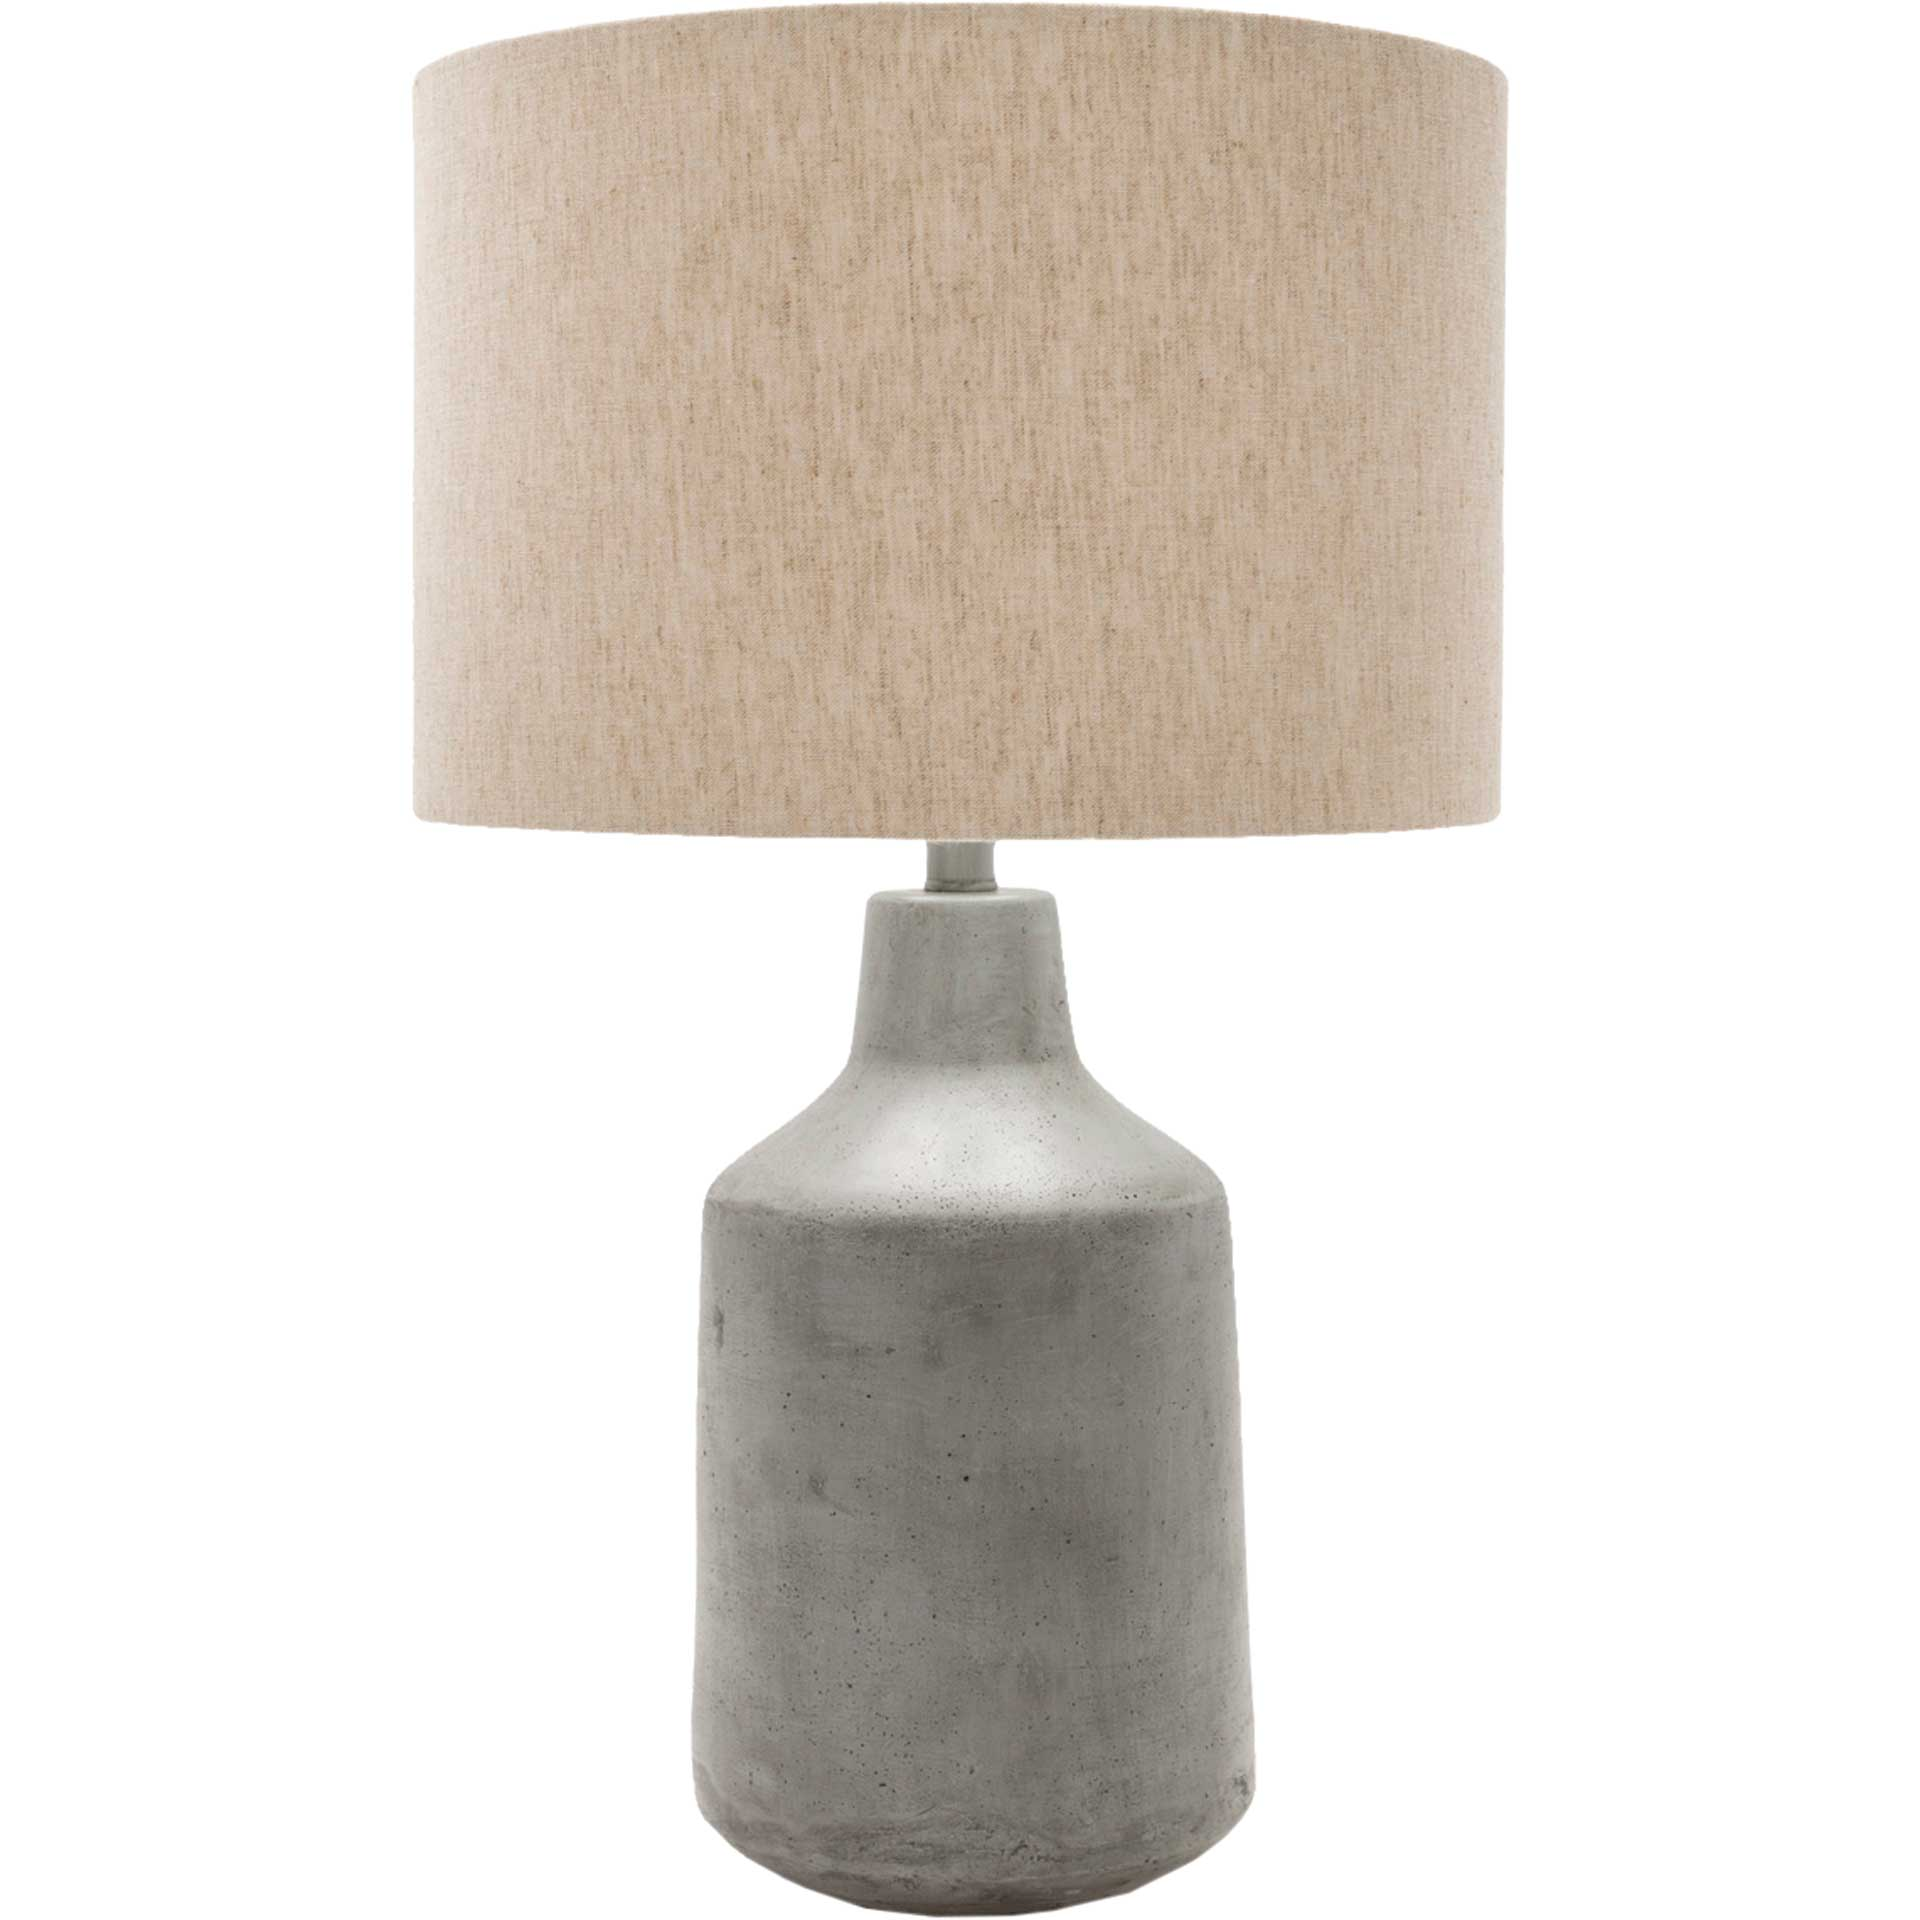 Forrest Table Lamp Medium Gray/Taupe/Slate Gray